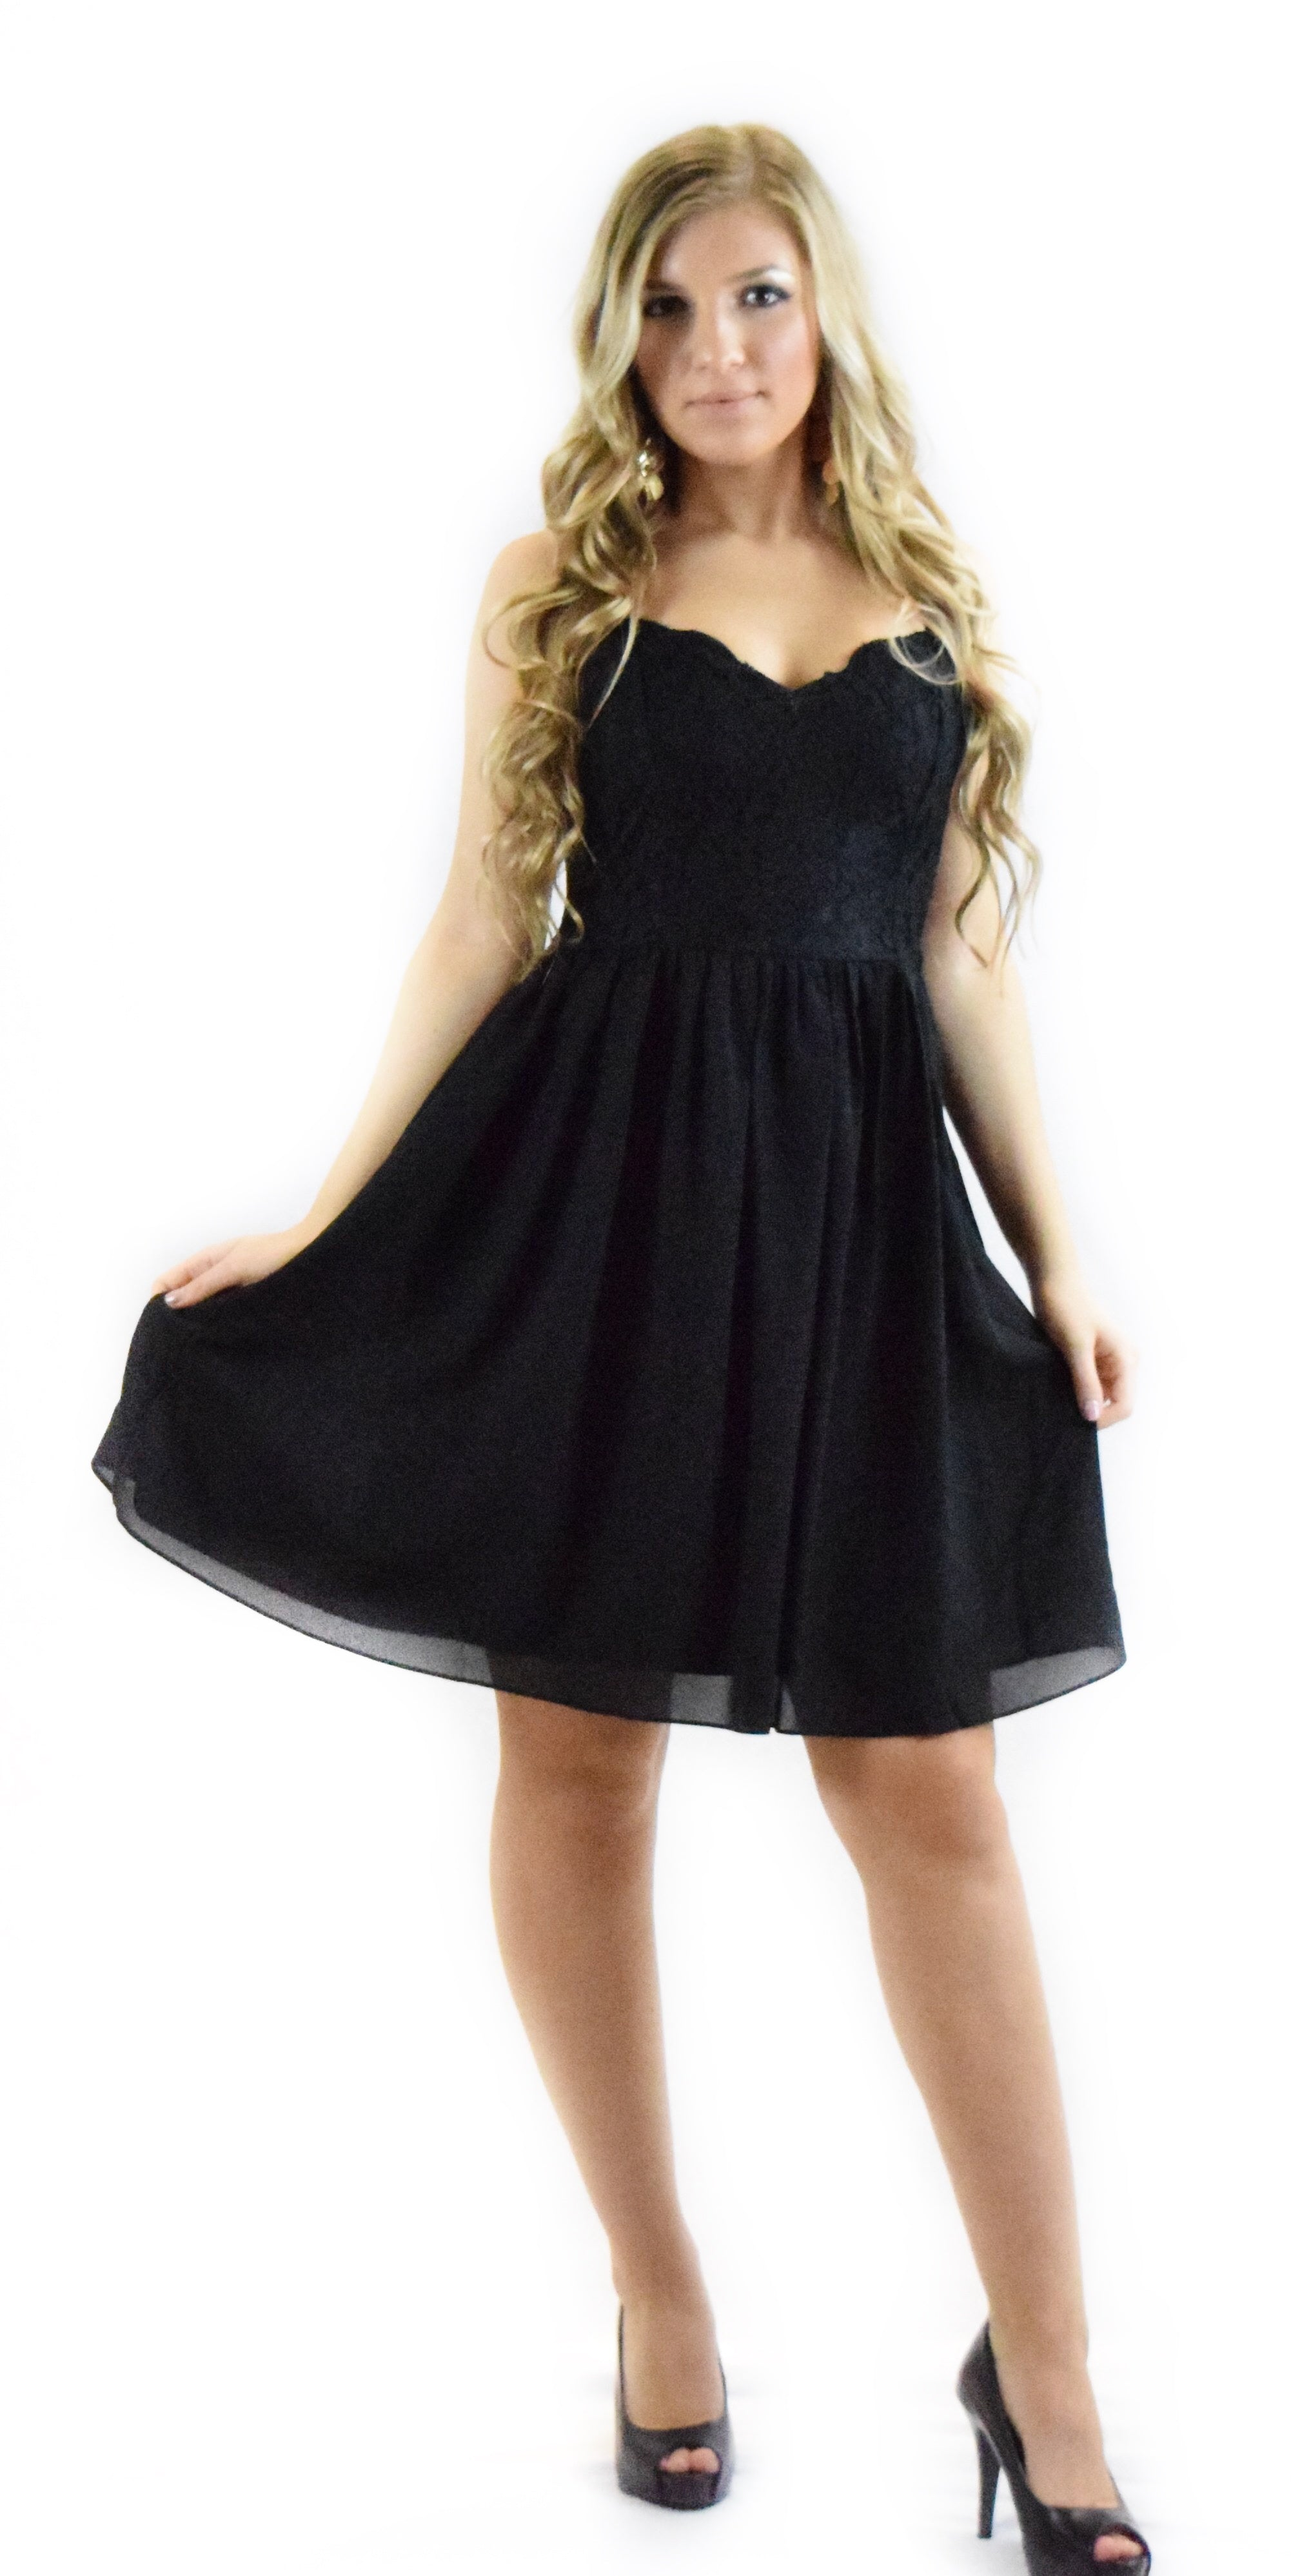 black spaghetti dress fancy dressy lace ruffle knee length fashion clothing woman trending style